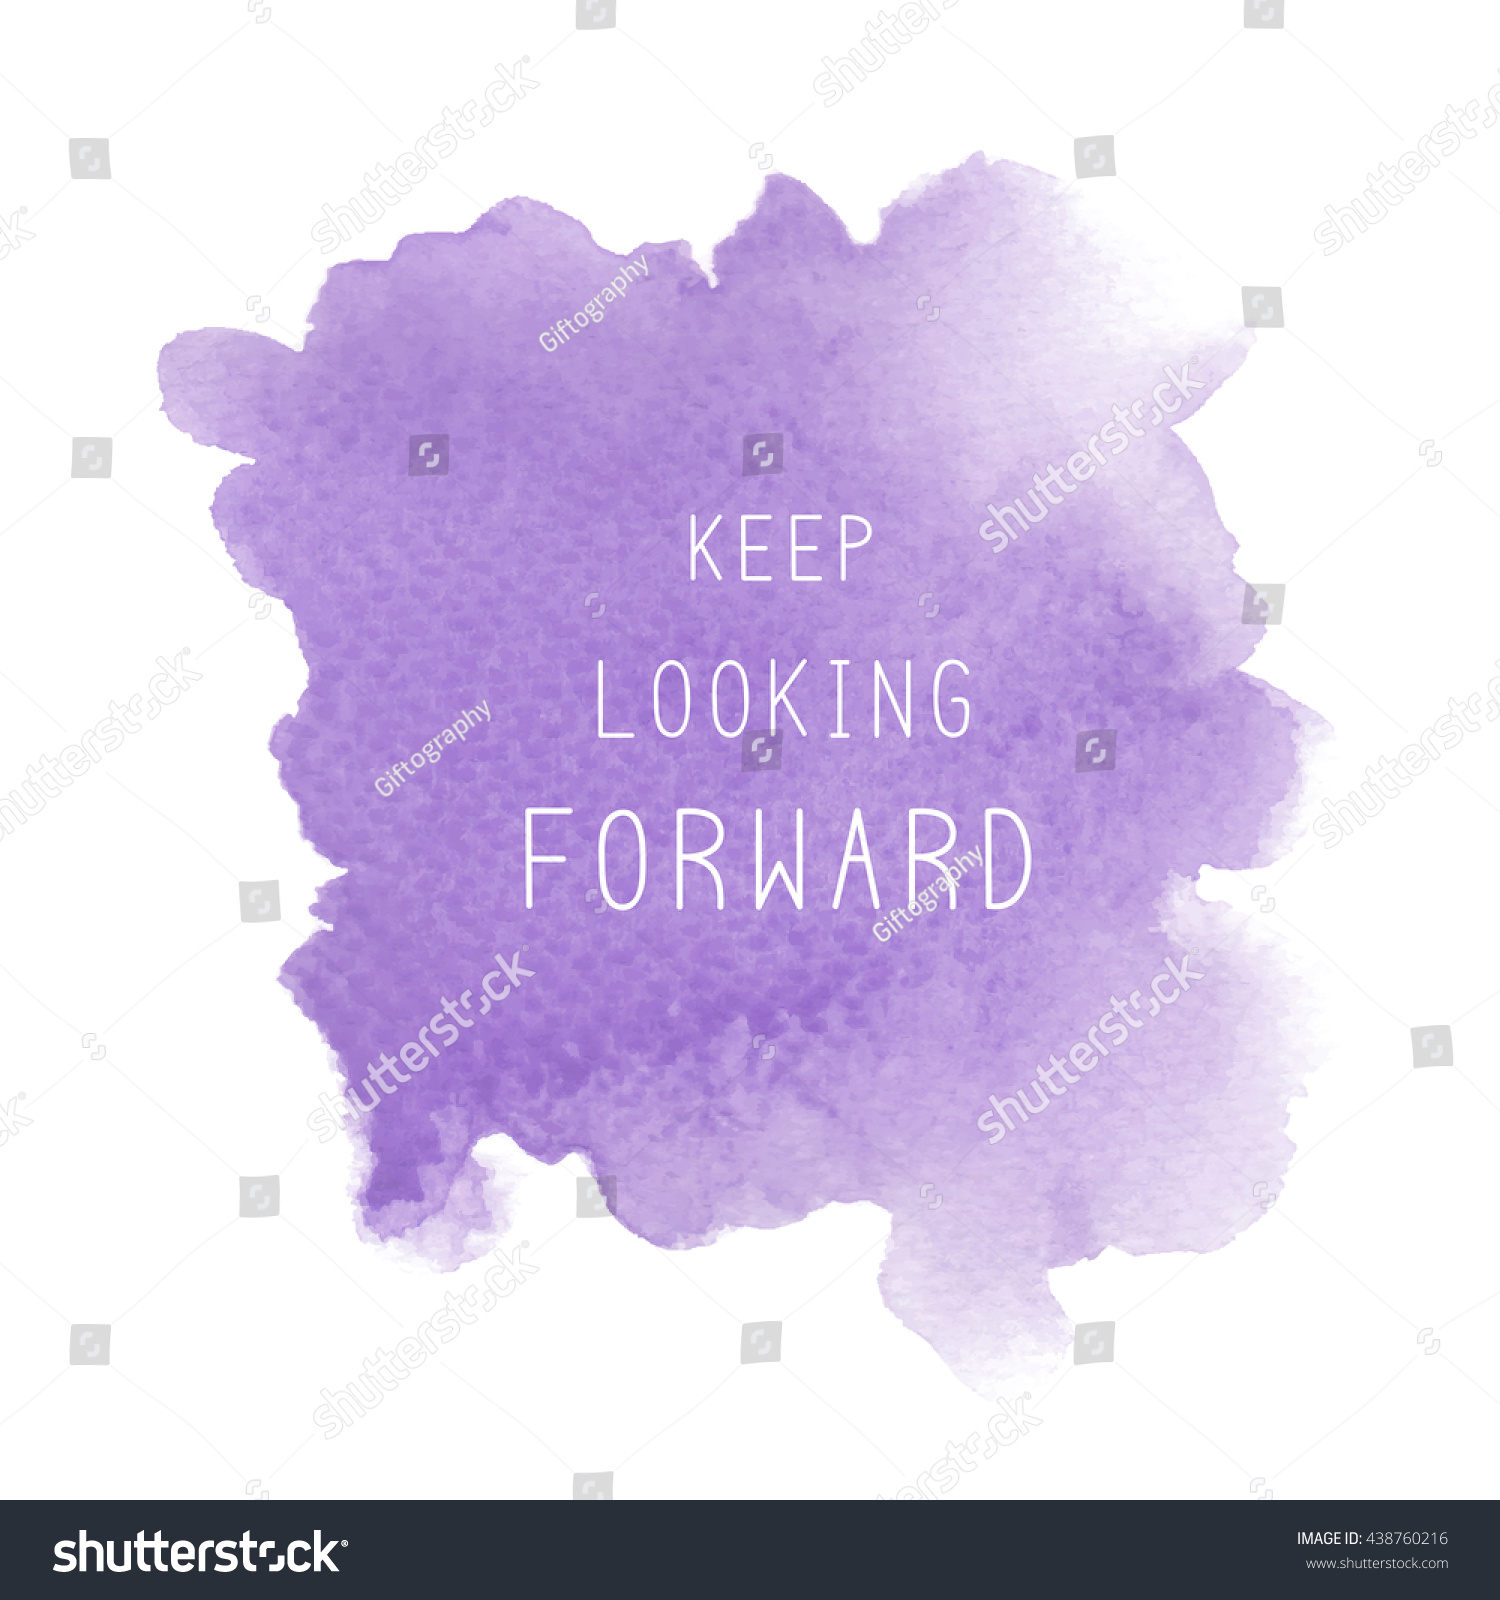 Looking Forward Quotes Keep Looking Forward Inspirational Quote On Stock Illustration